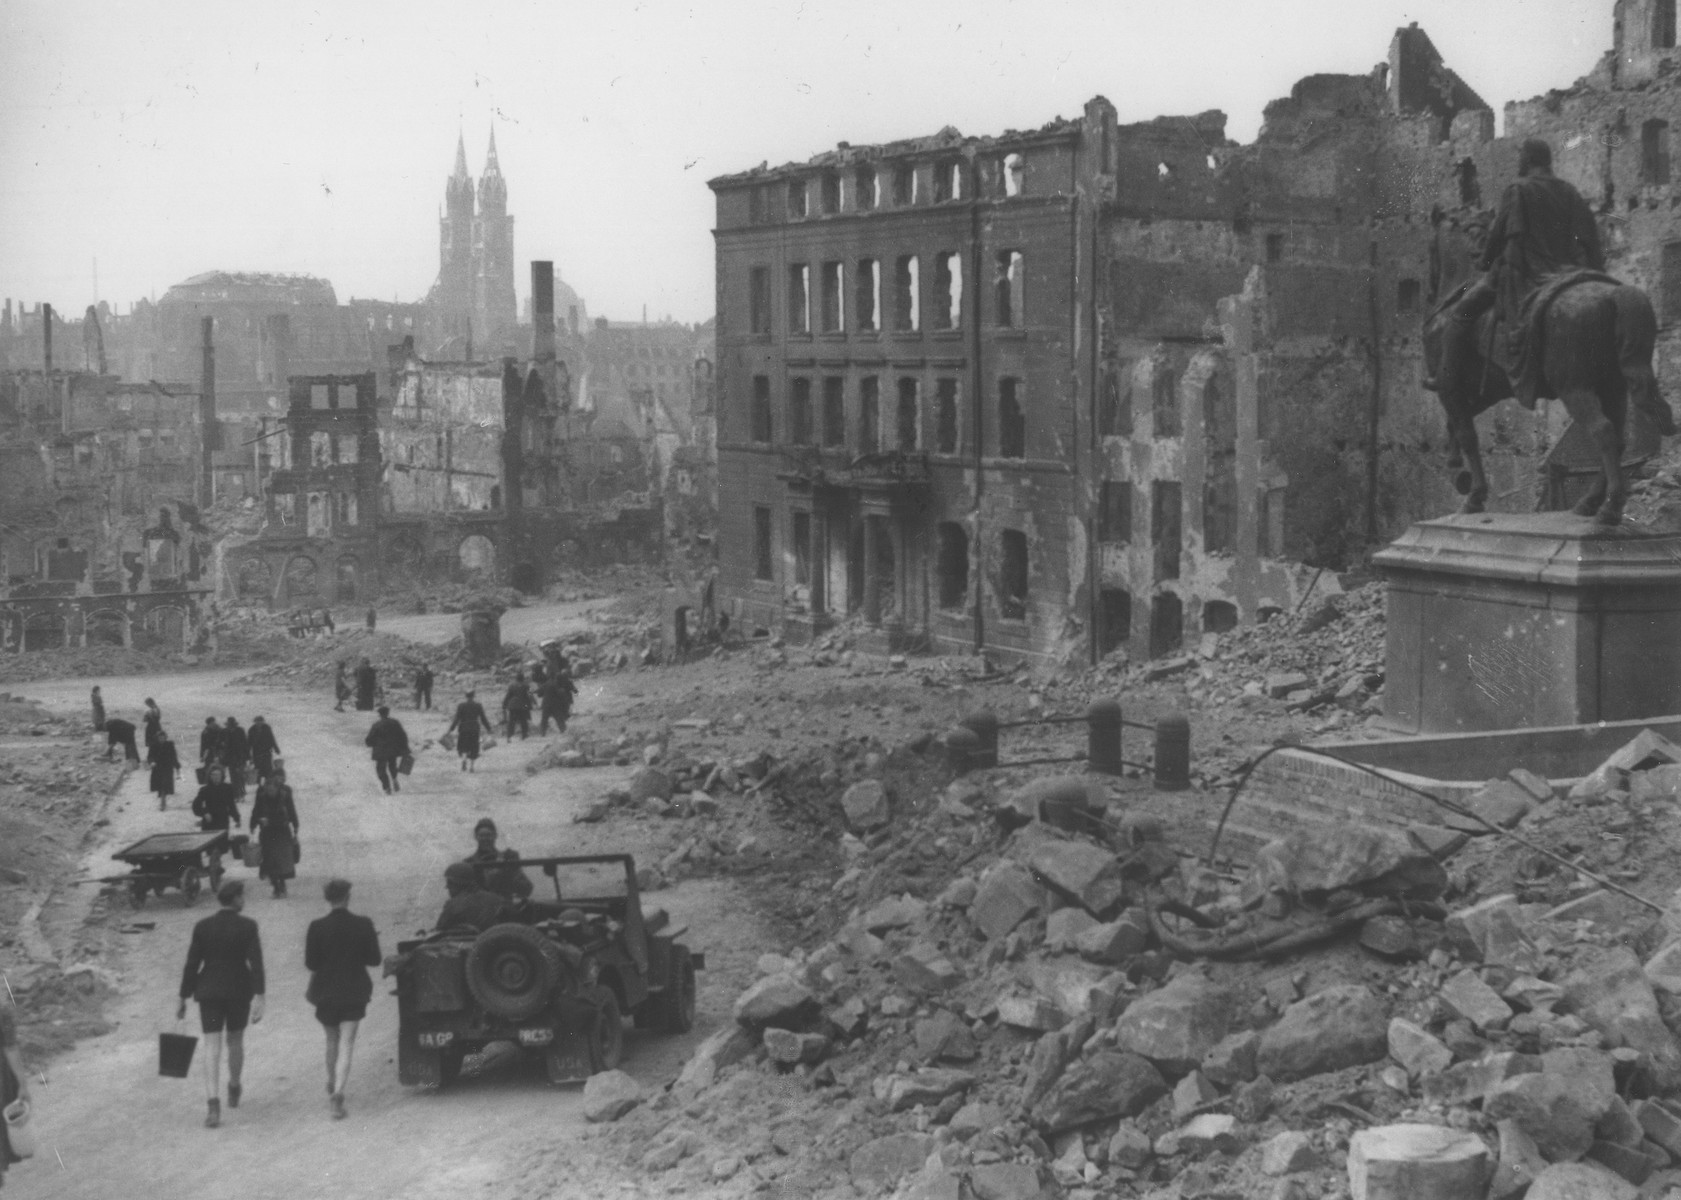 View of the bombed-out city of Nuremberg.    Visible in the distance is the twin-spired Lorenz Church, and on the right, a statue of Kaiser Wilhelm I.